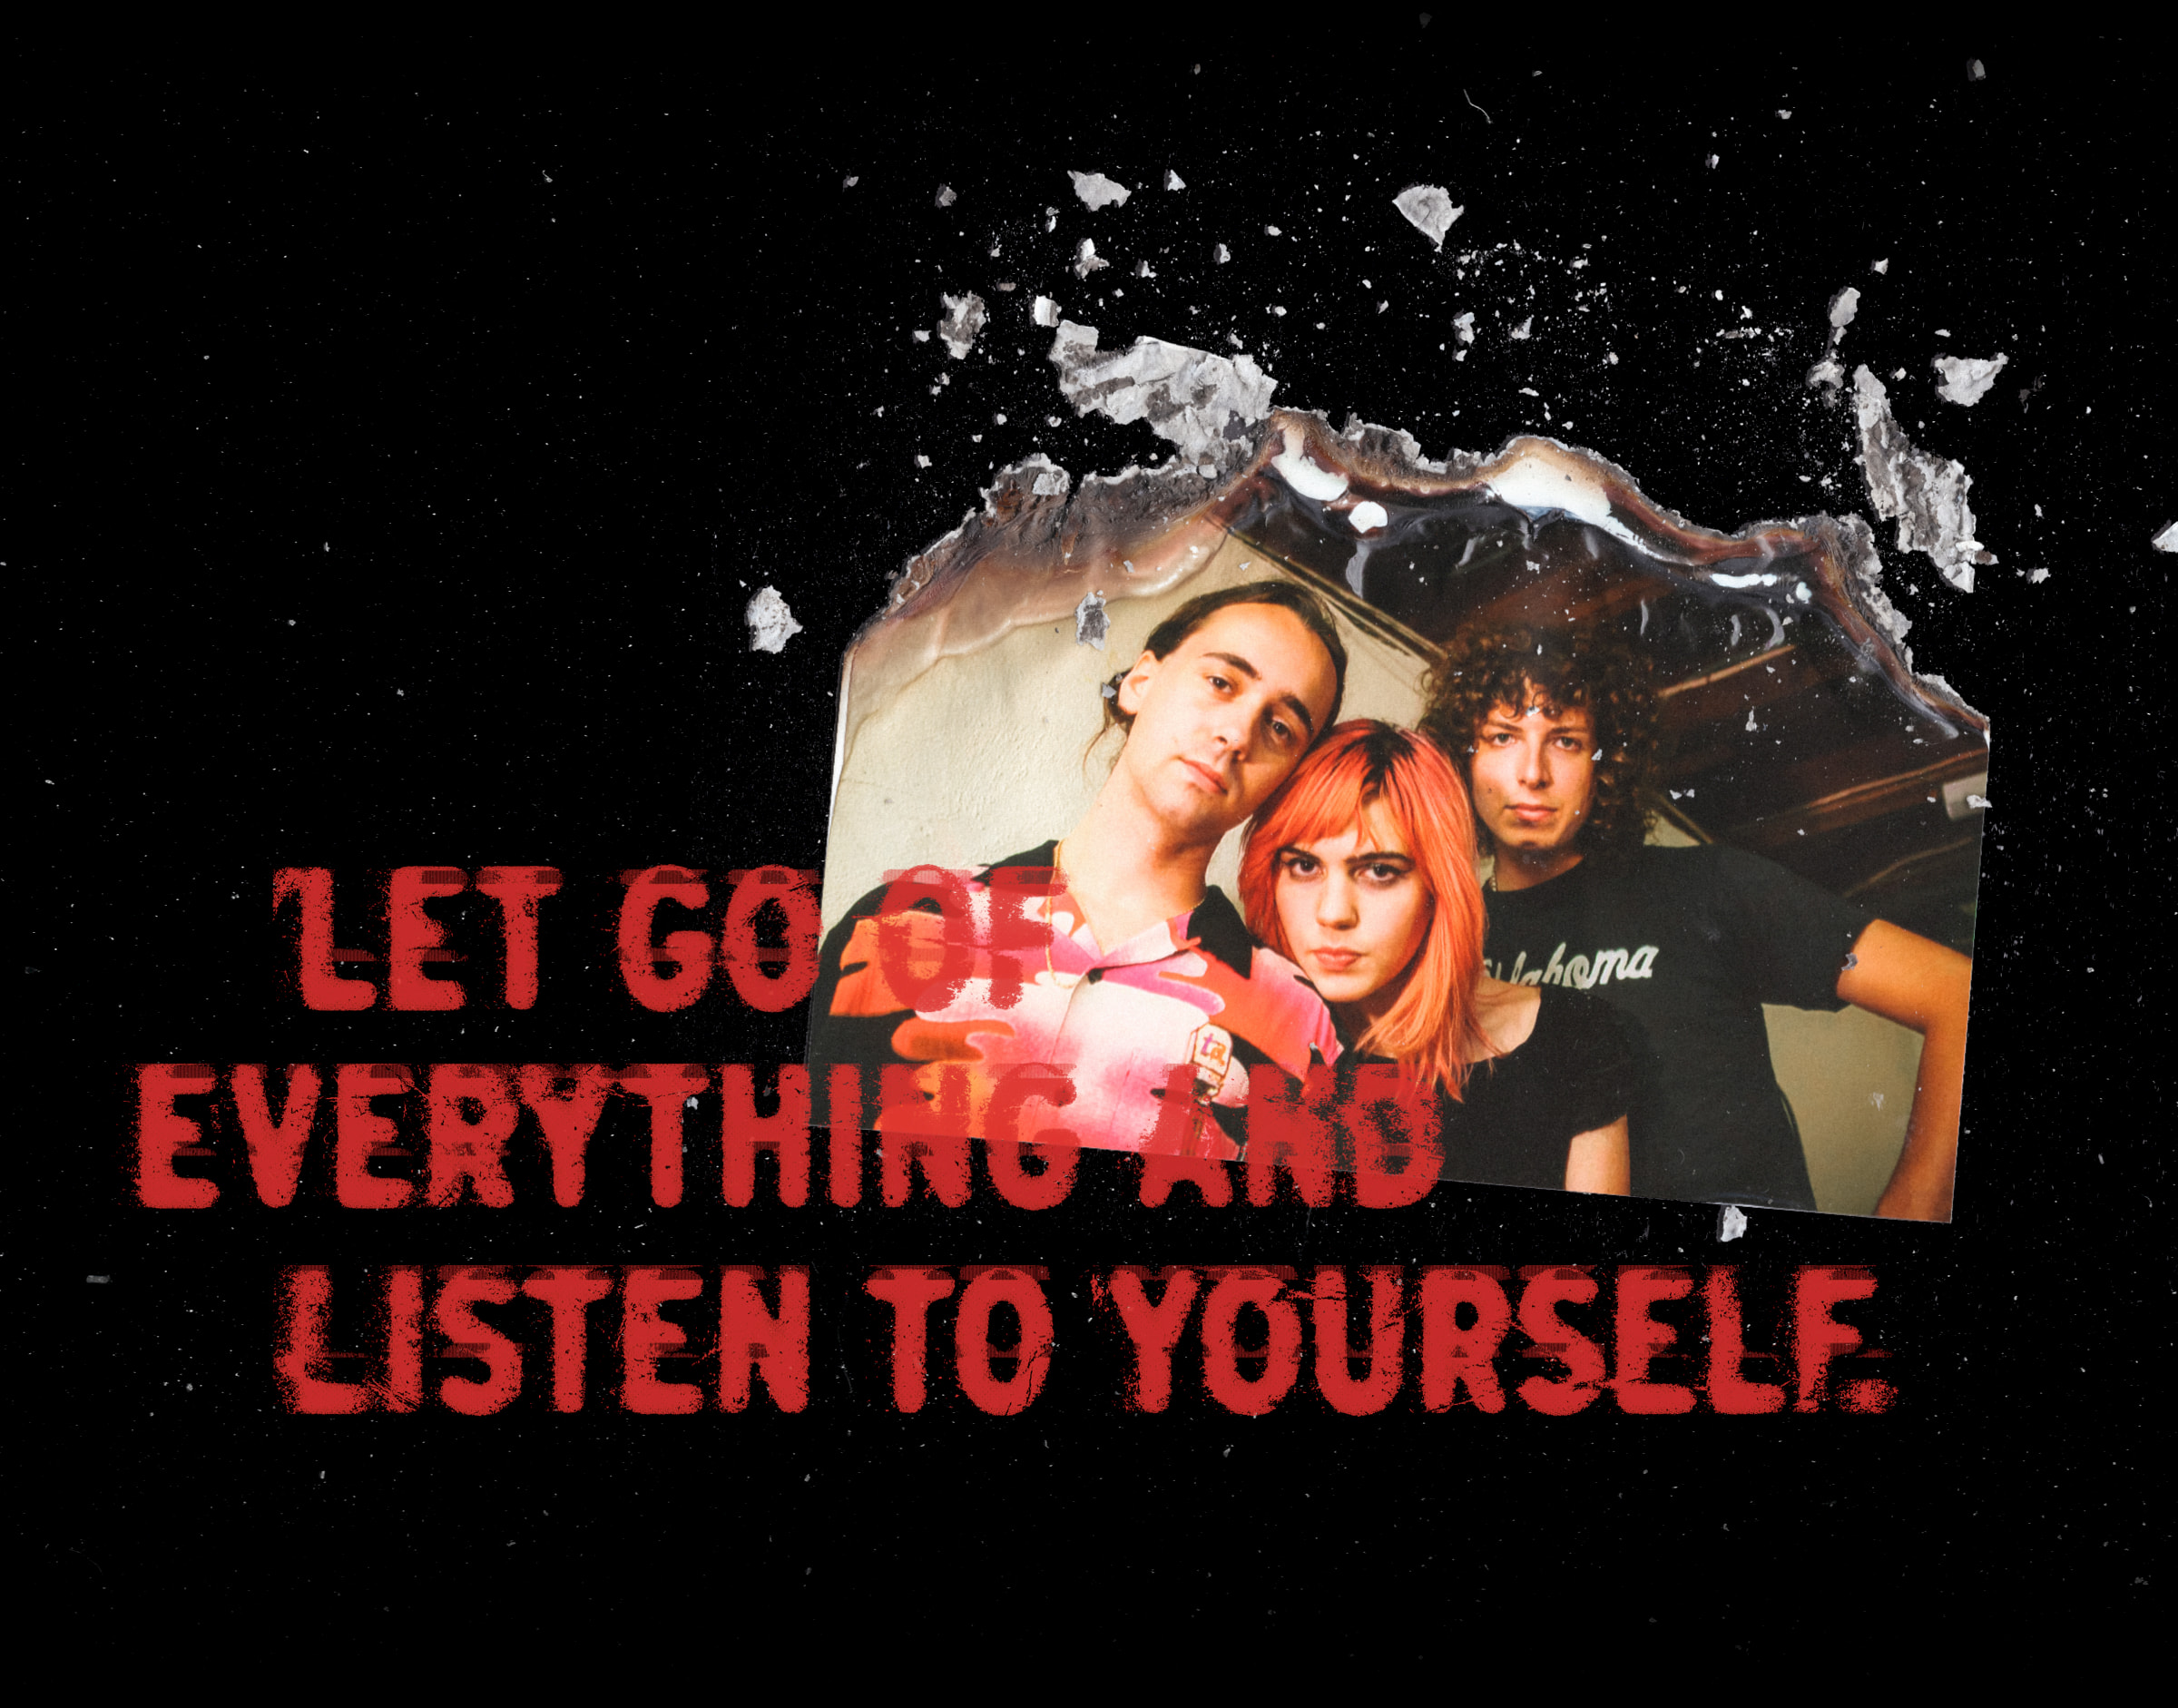 """A stylized photo of the trio that appears as if the top has been burnt away. Overlaid are the words """"Let go of everything and listen to yourself."""""""